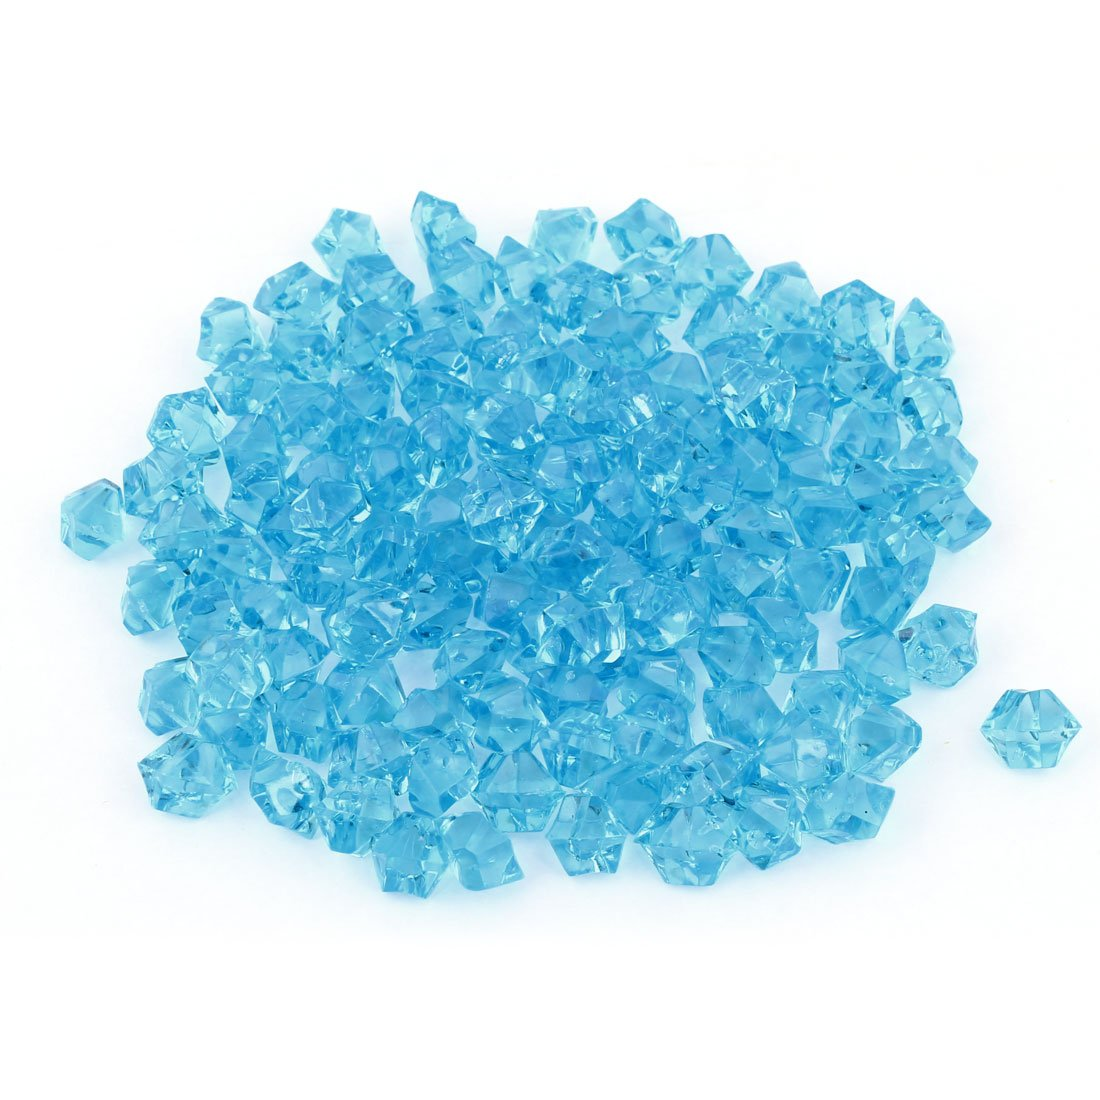 uxcell 200-Piece Plastic Fish Tank Crystal Stones Set, 0.6-Inch, Blue by uxcell